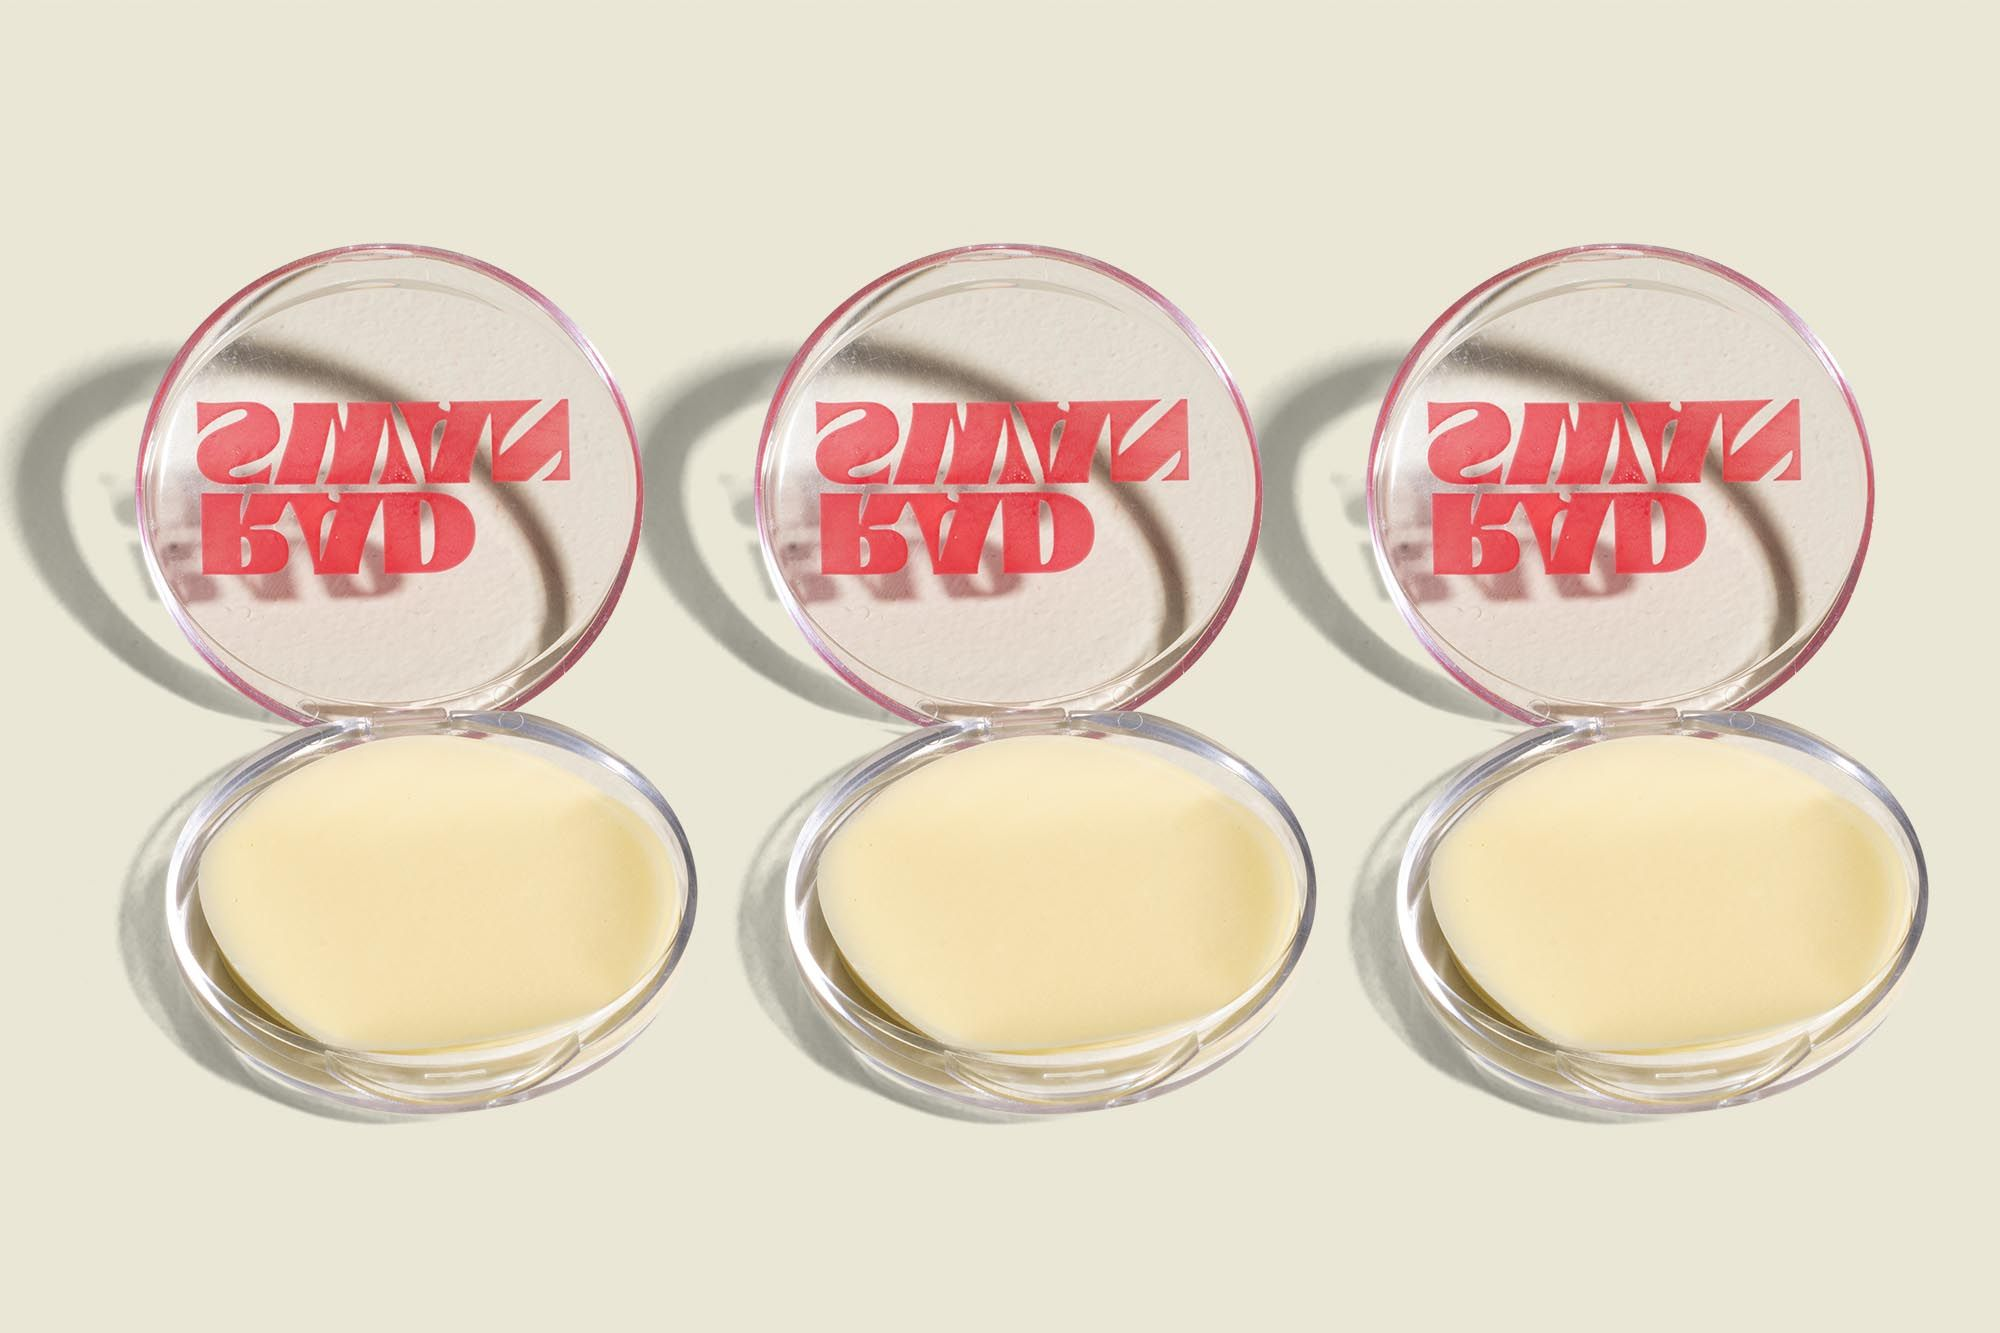 Beauty product compact